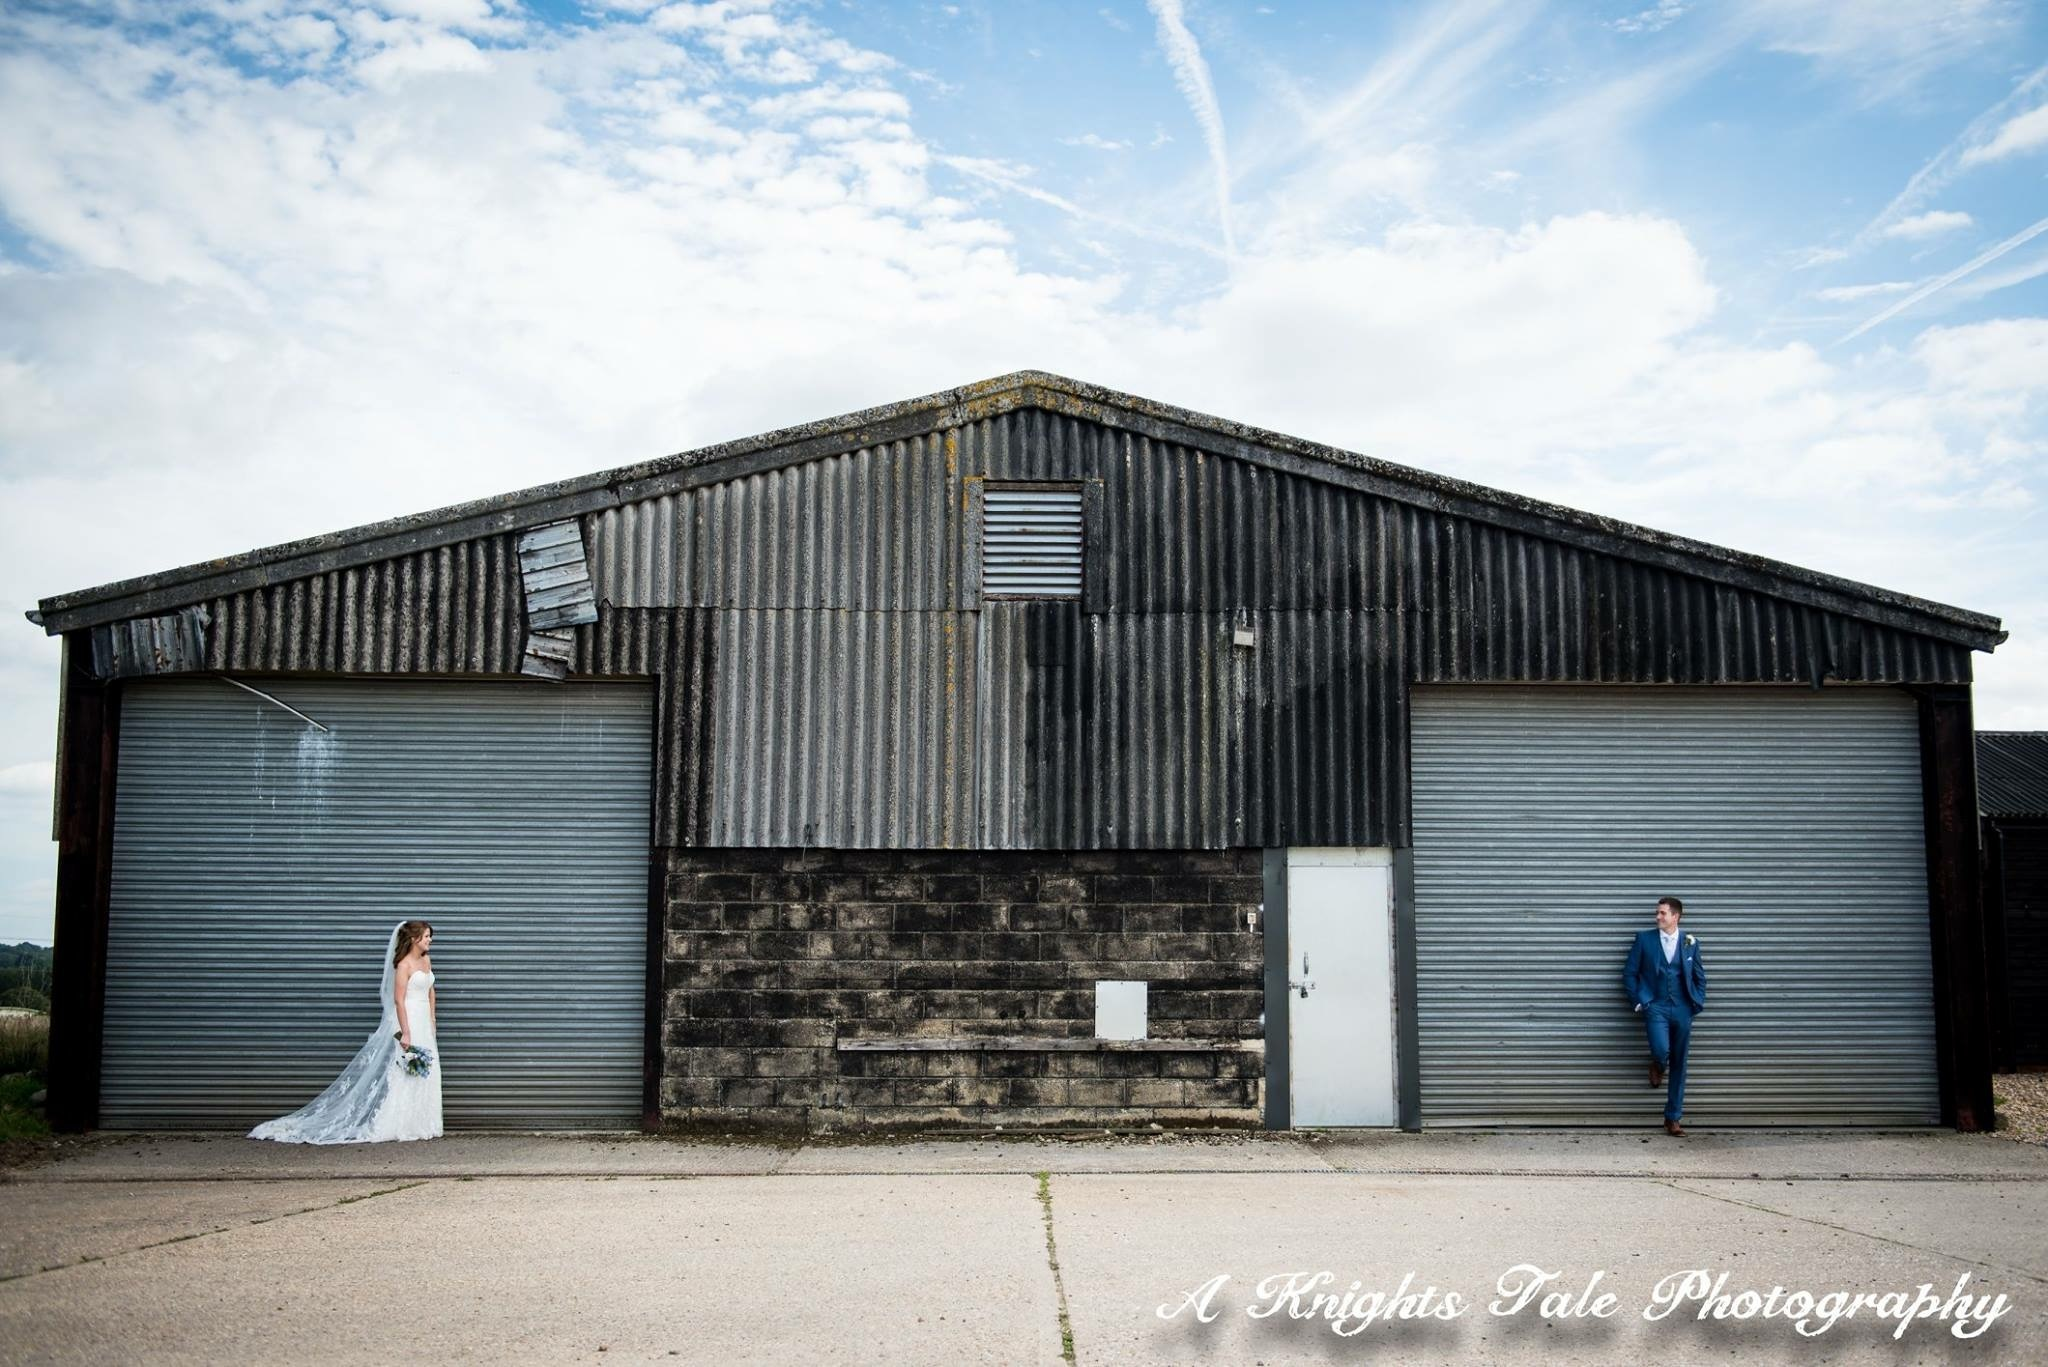 Bride and groom outside barn by Adam Knight